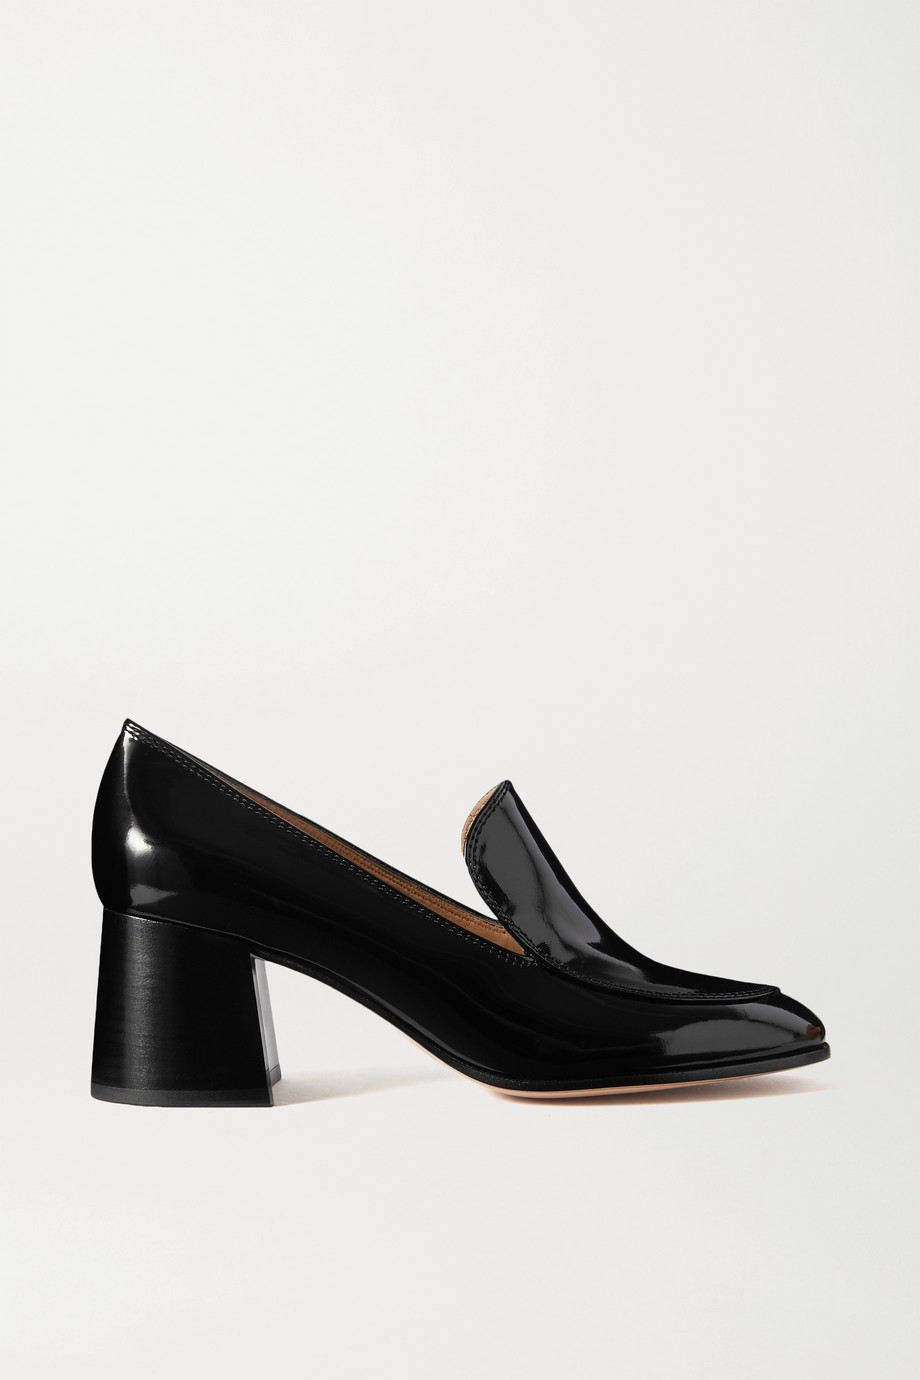 Gianvito Rossi Marcel 60 patent-leather pumps